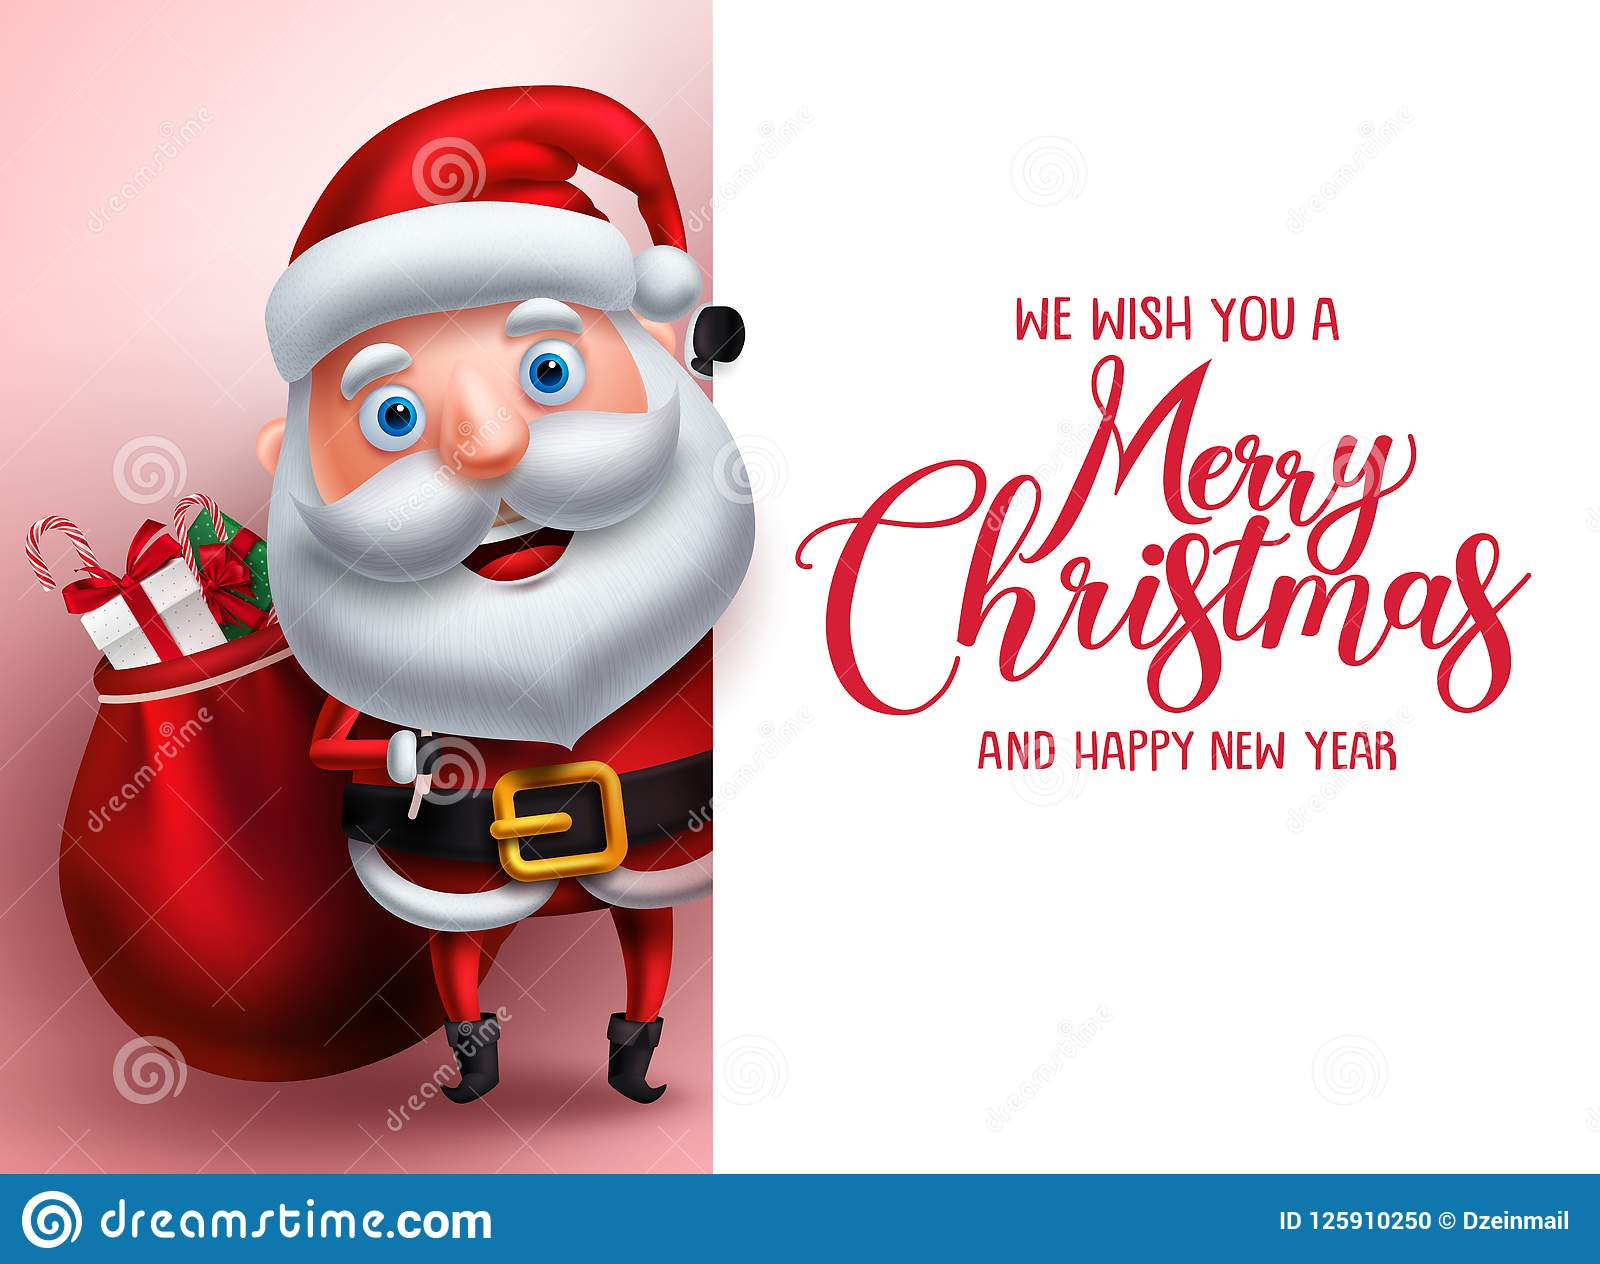 Merry Christmas Greeting Template With Santa Claus Vector Character